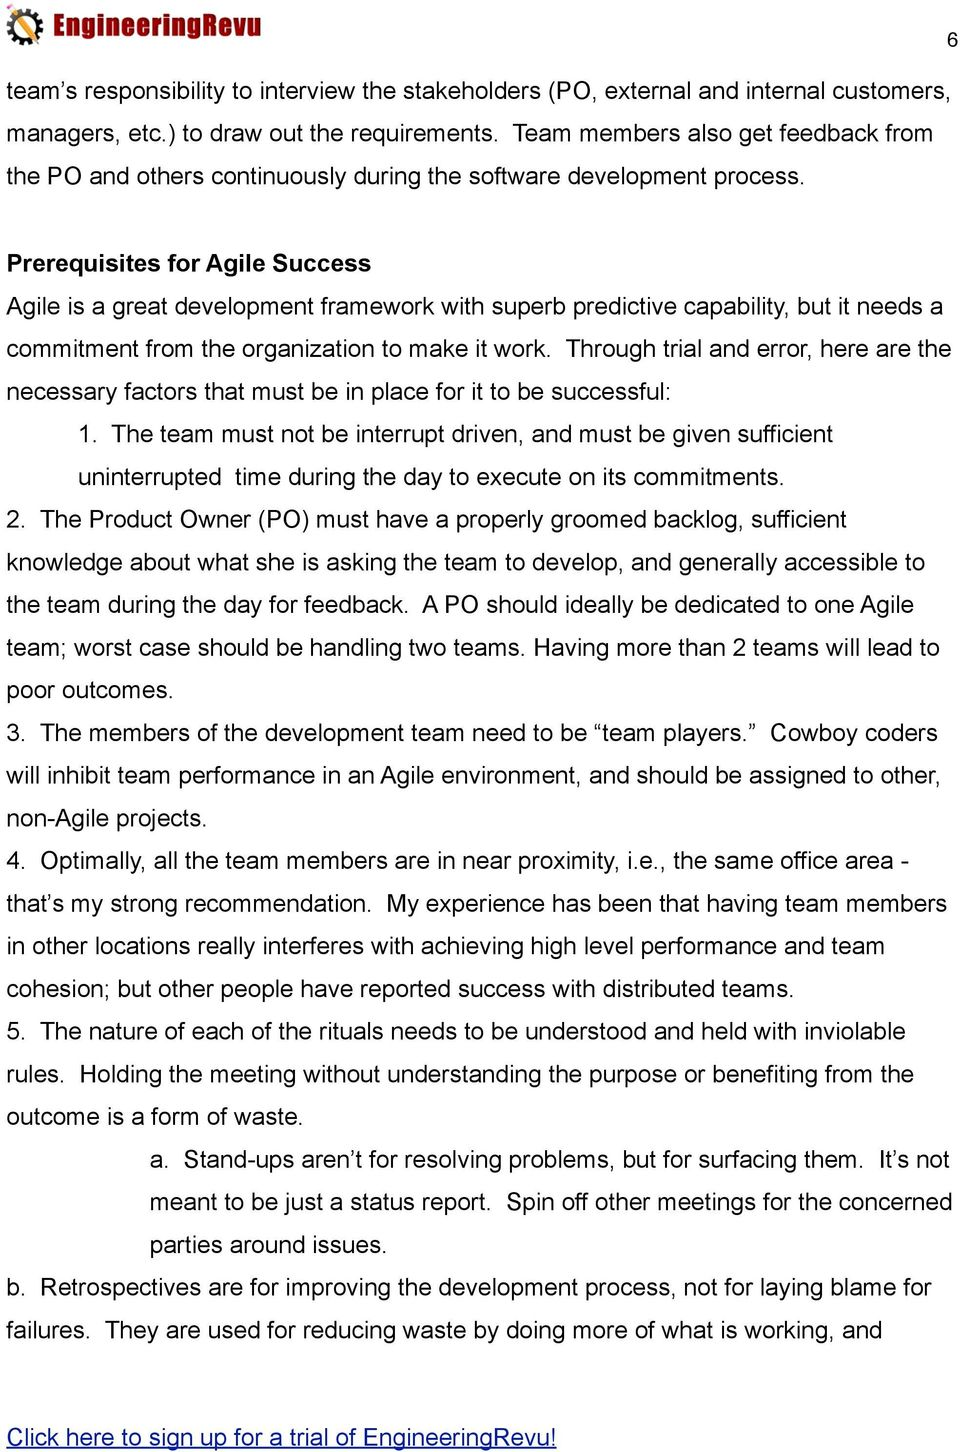 Prerequisites for Agile Success Agile is a great development framework with superb predictive capability, but it needs a commitment from the organization to make it work.